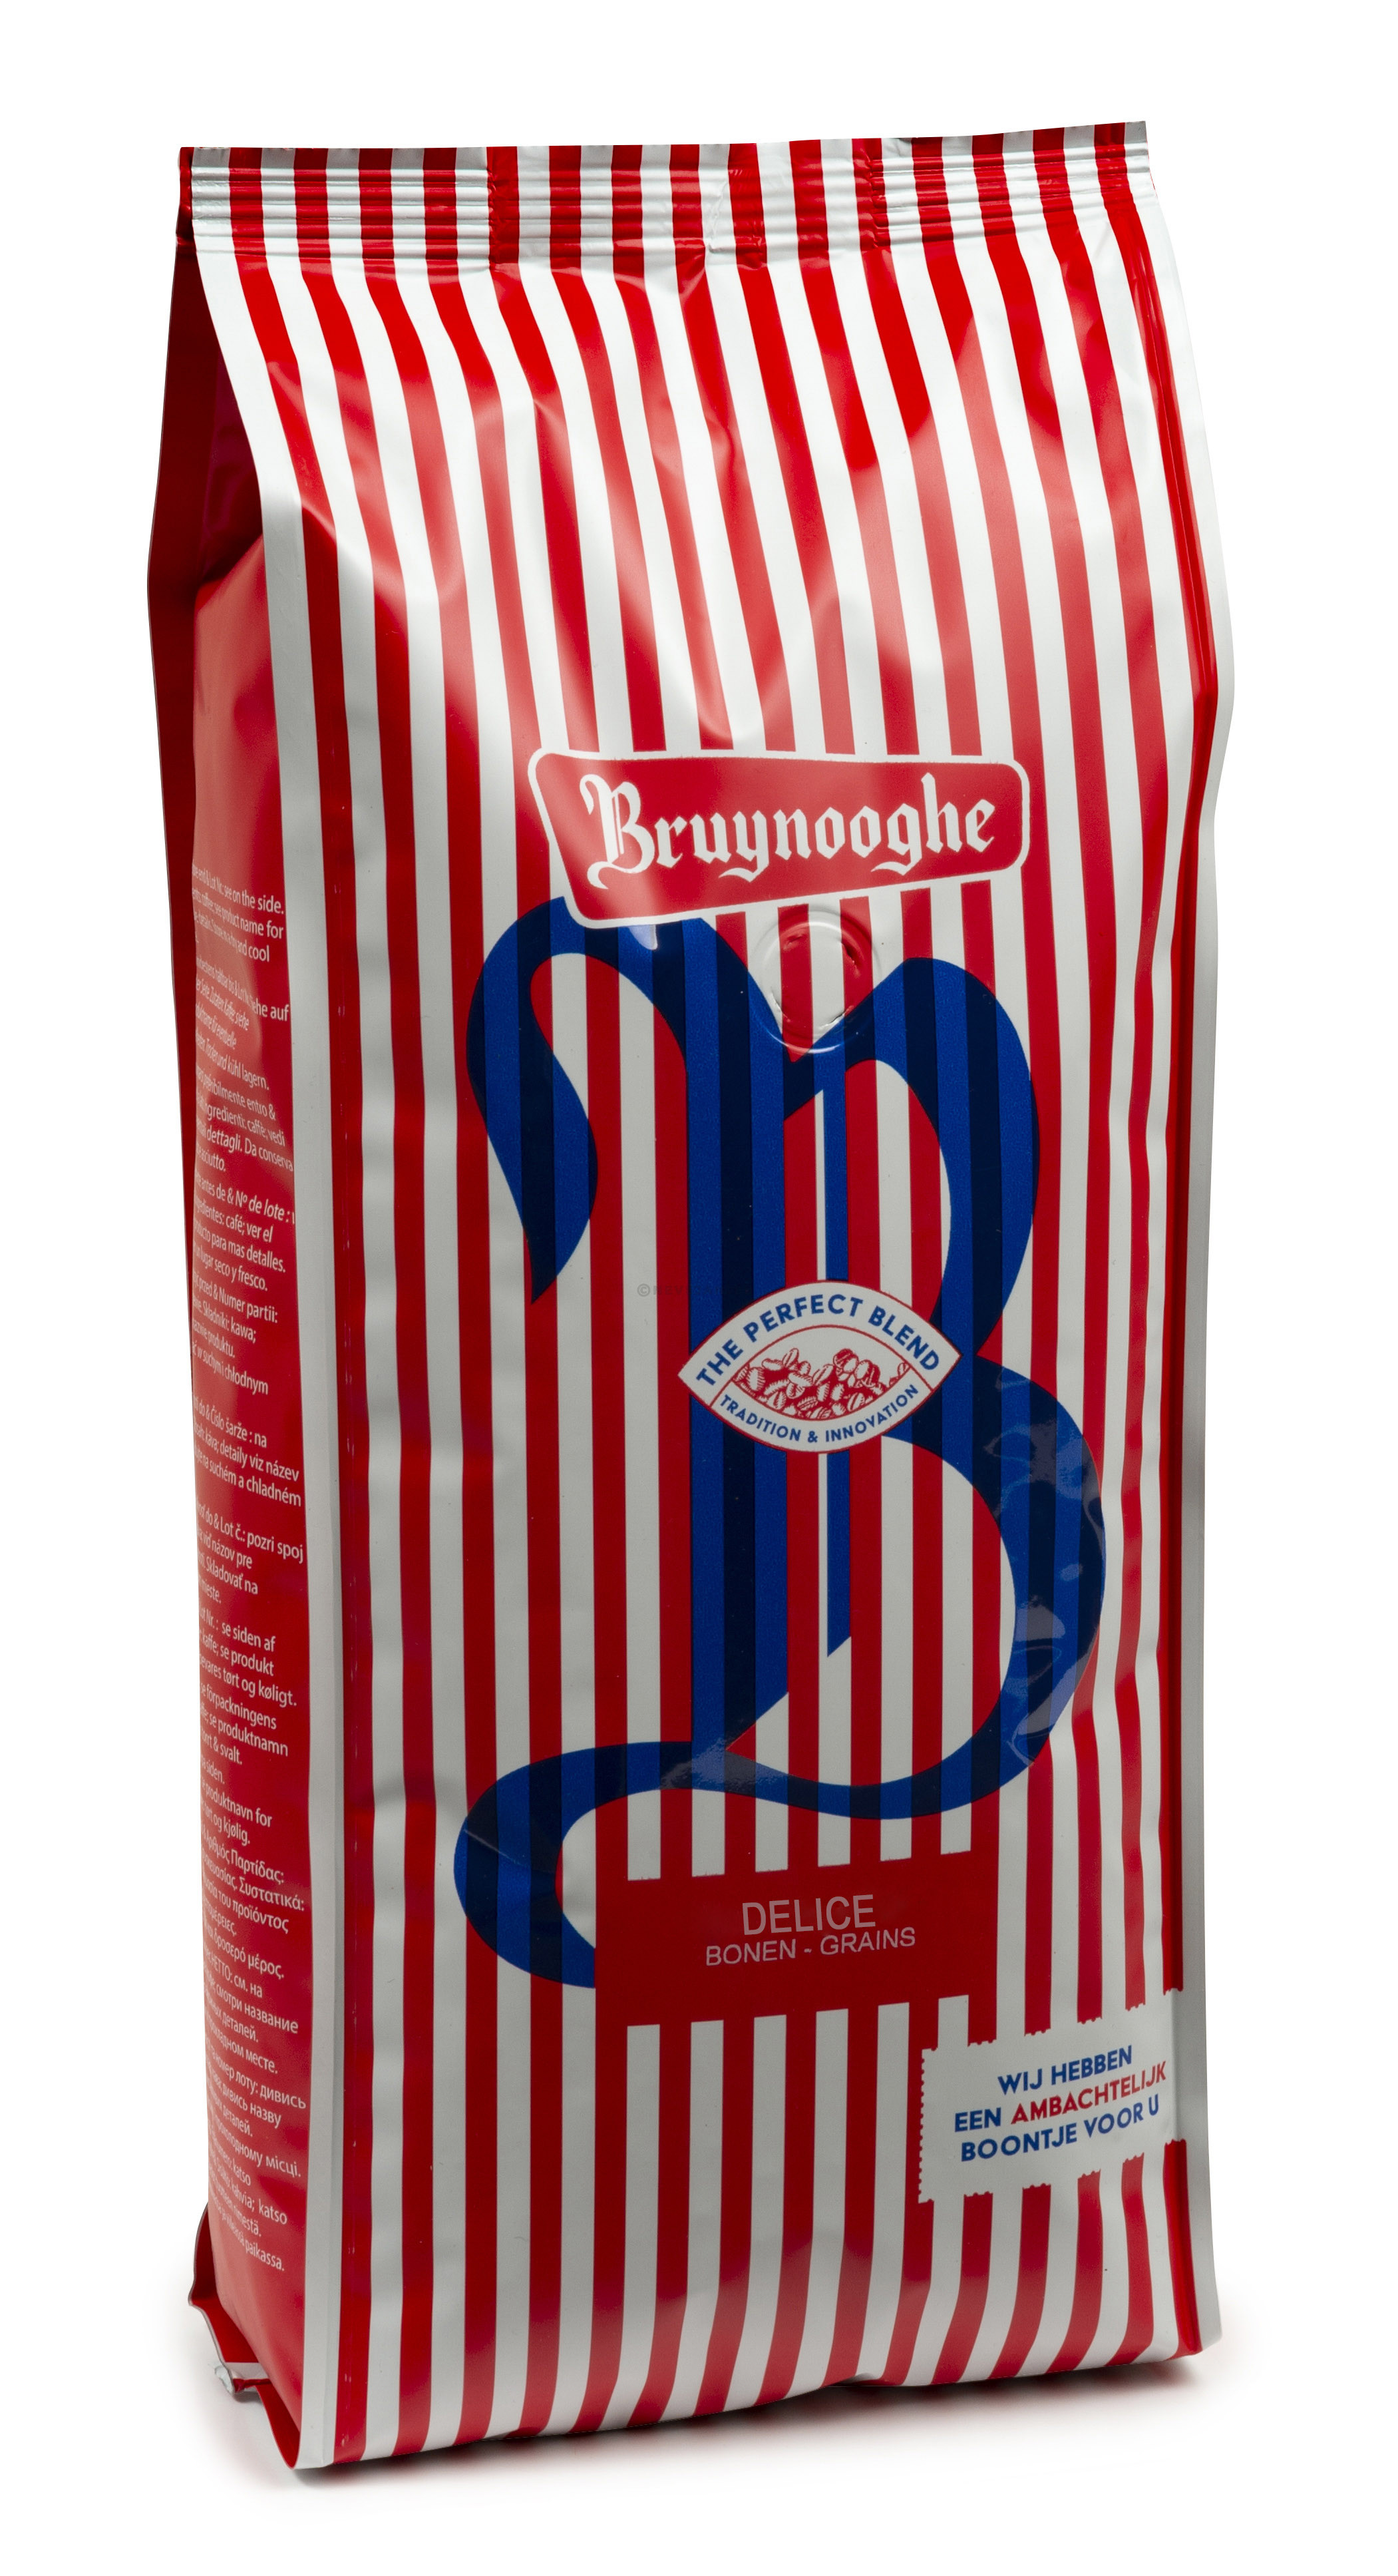 Bruynooghe Coffee Delice beans 1kg (Koffie)